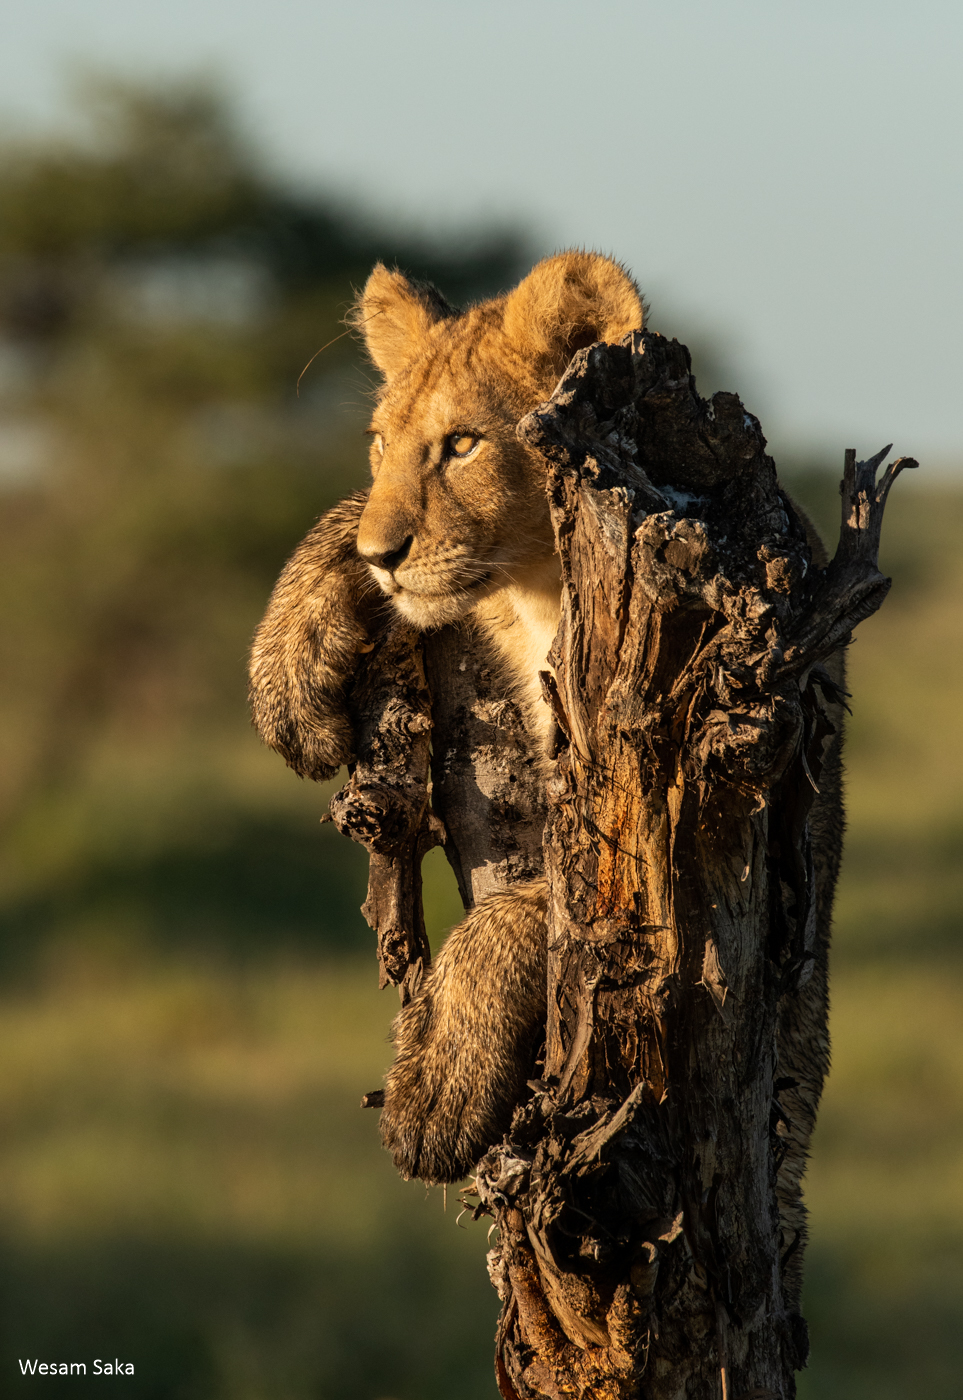 A lion cub on the top of a dead tree in the Serengeti National Park, Tanzania